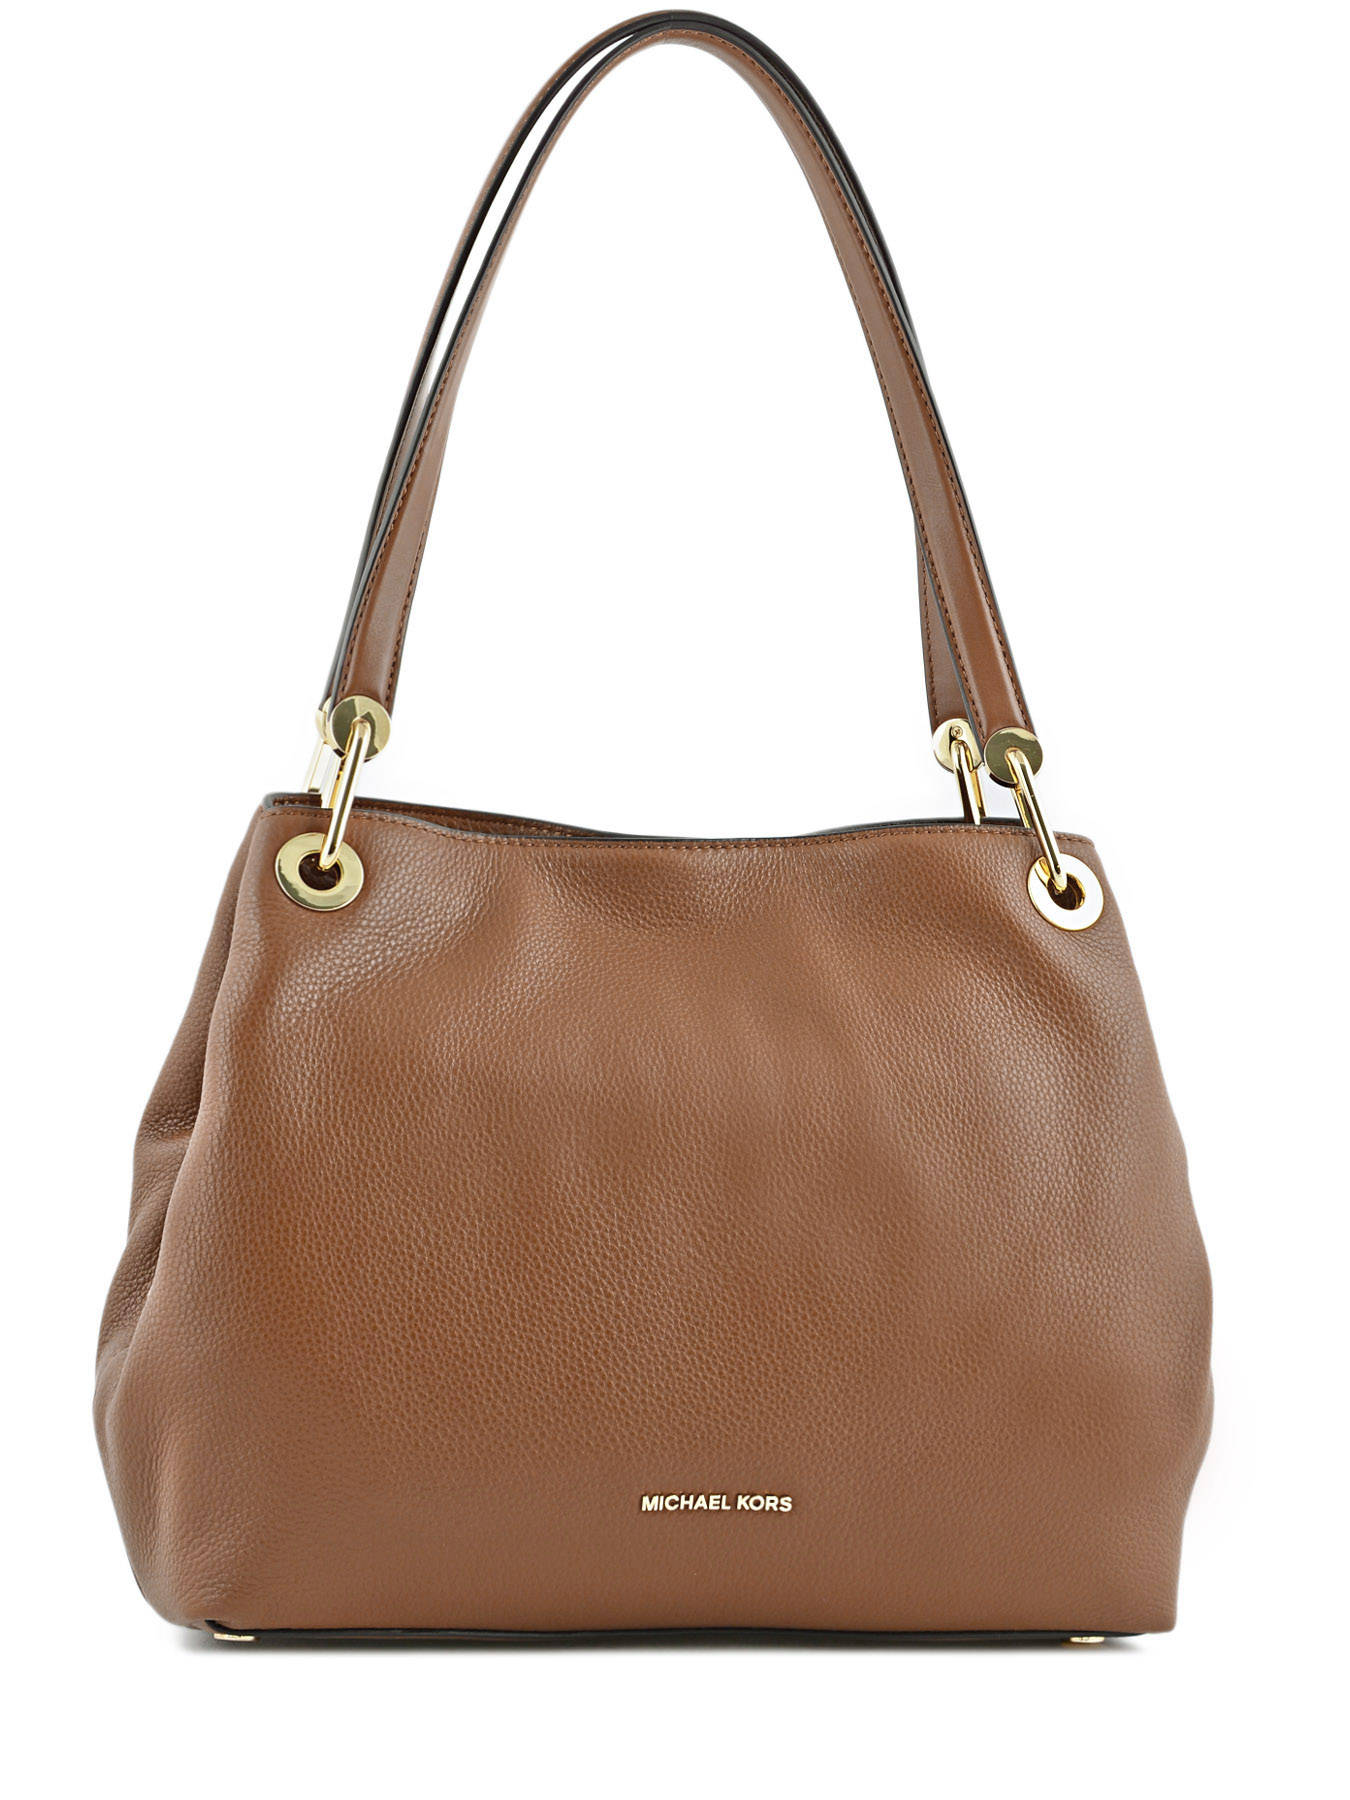 fcac78adfdd1 Michael Kors Shoulder bag 30.H6GRXE3L - free shipping available